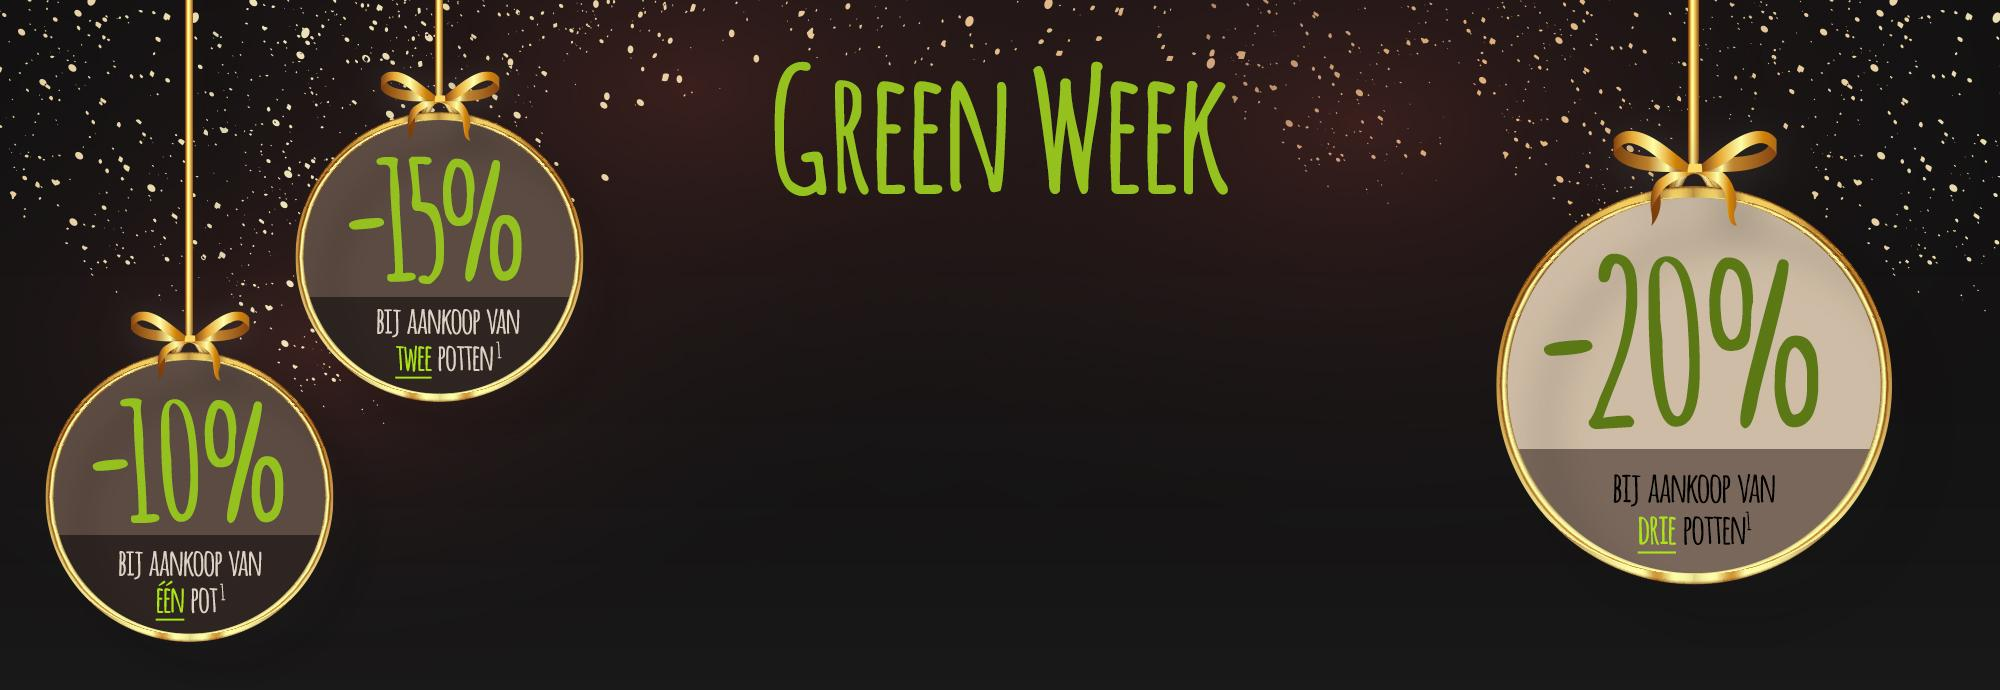 Green Week: Extra korting van 23-30 november 2020